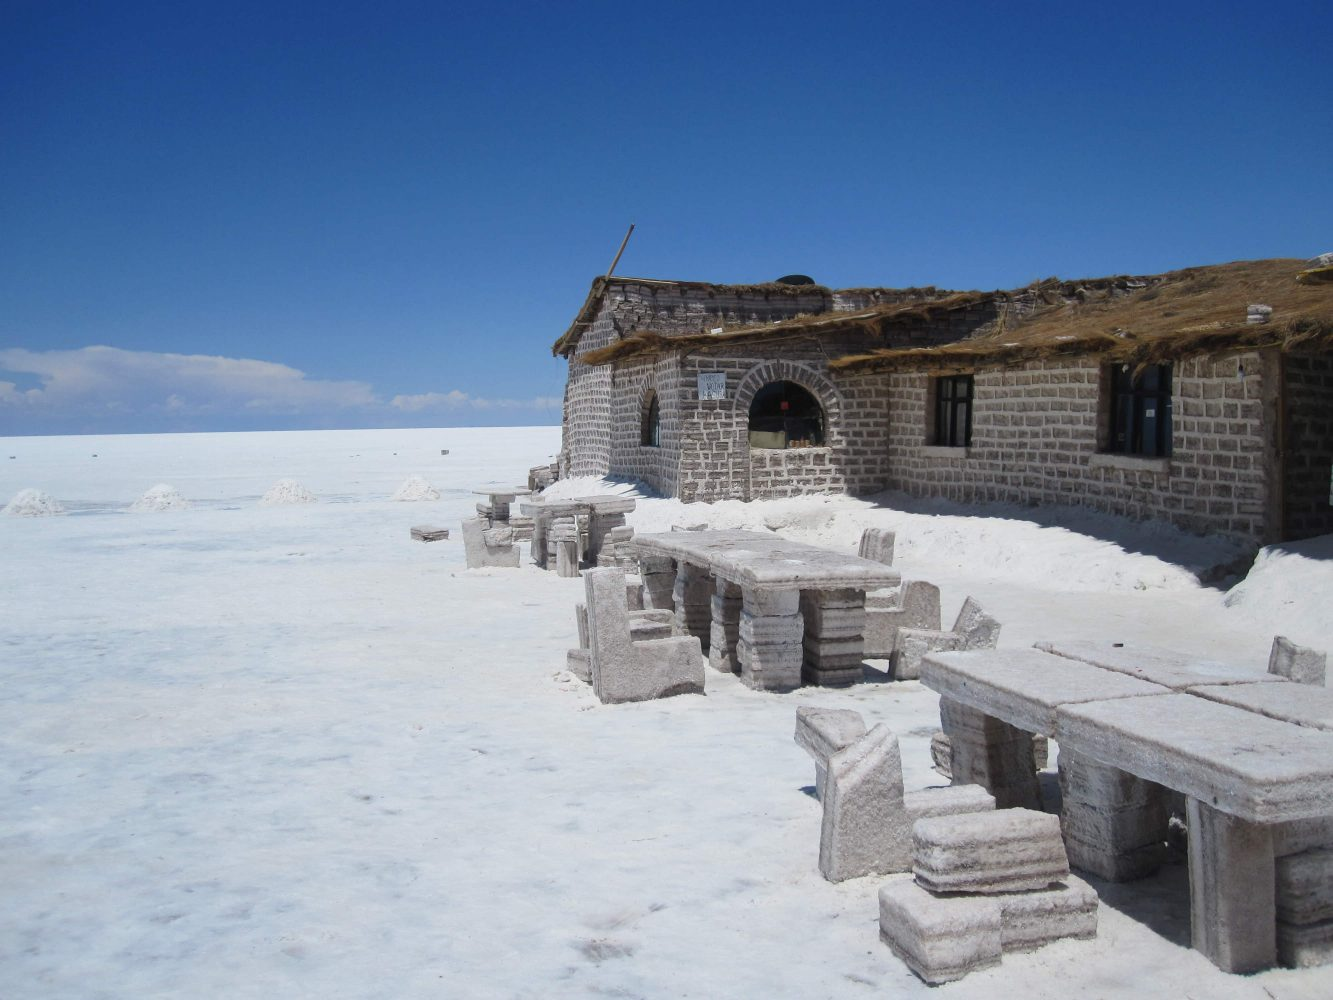 Pass the salt bolivia s salt hotel brendan 39 s adventures for Salar de uyuni hotel made of salt